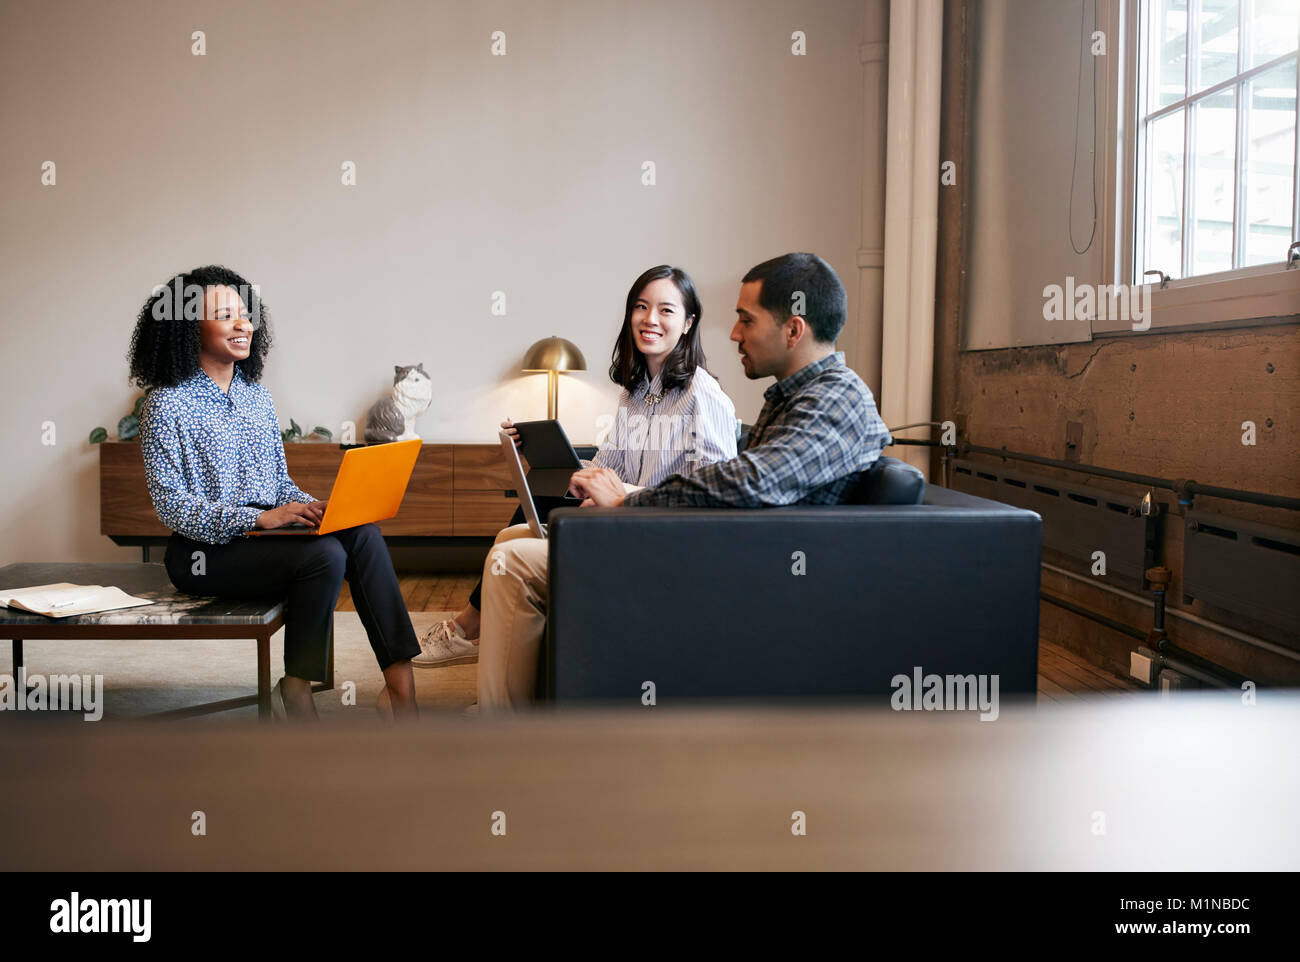 Smiling work colleagues using laptops at a casual meeting - Stock Image